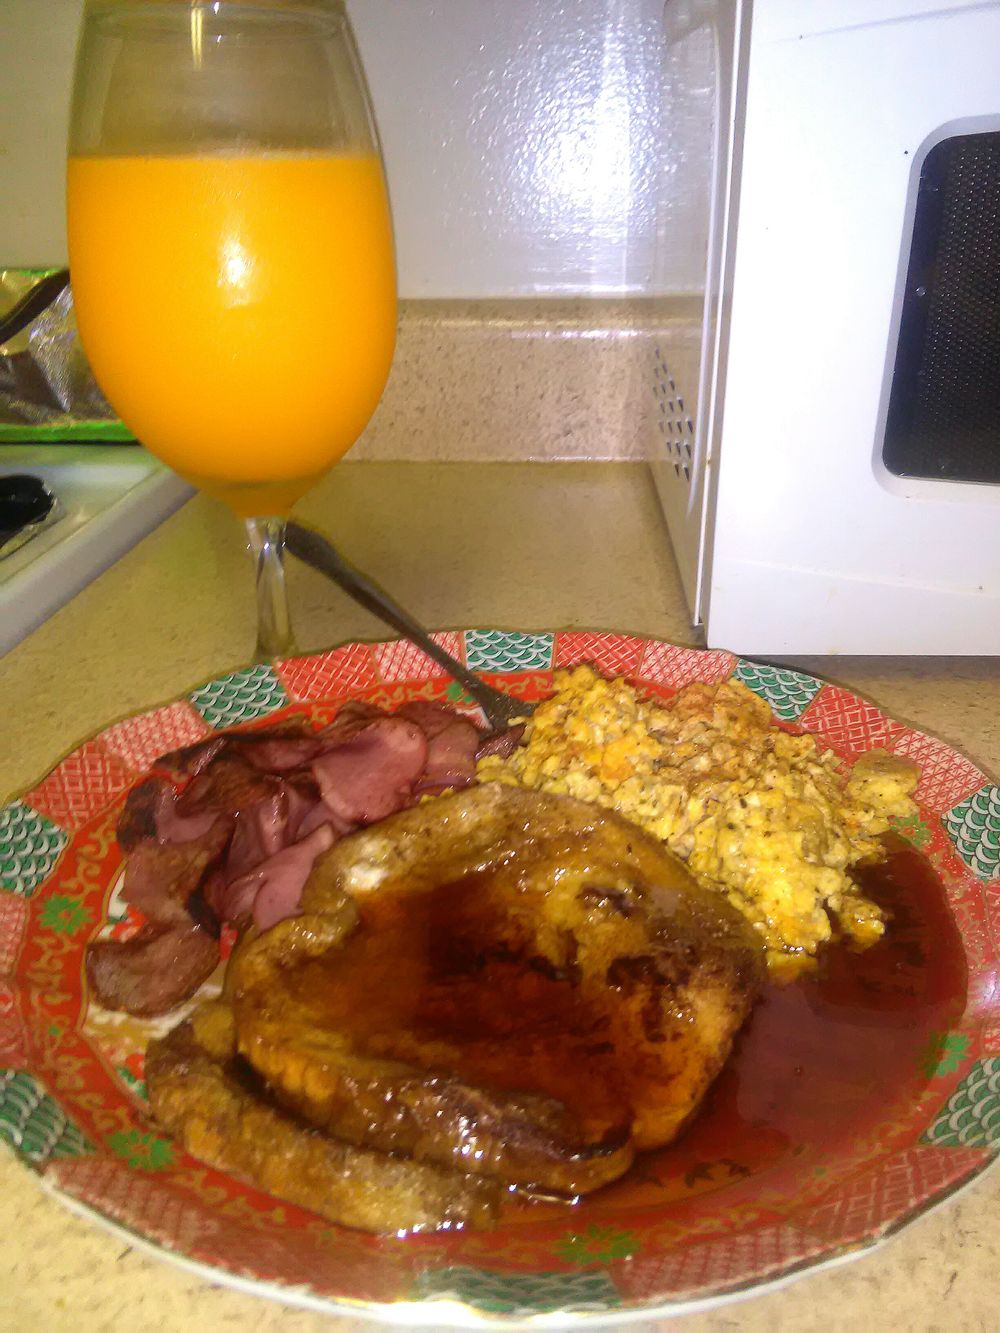 Bacon And Eggs Food And Drink Drinking Glass Egg Yolk Cooking Ingredient Cookbookinstores Food Meal First Eyeem Photo French Toast Orange Juice  King Syrup